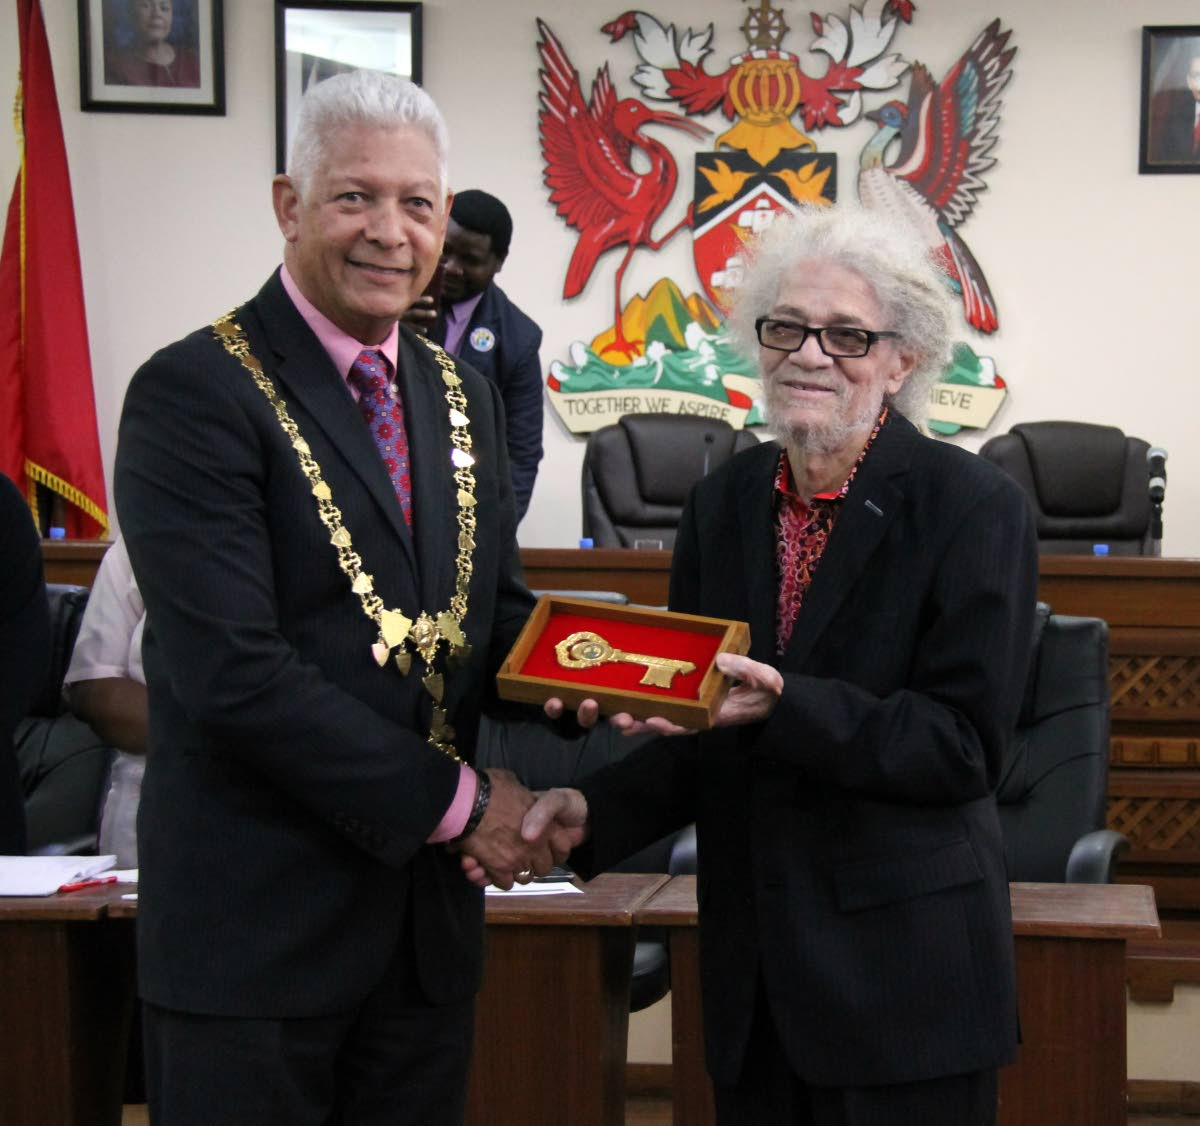 LEGEND: Port of Spain Mayor Joel Martinez, left, presents cultural icon Roy Cape with the ceremonial keys to the city at the launch of downtown Carnival on Friday. PHOTO SUREASH CHOLAI